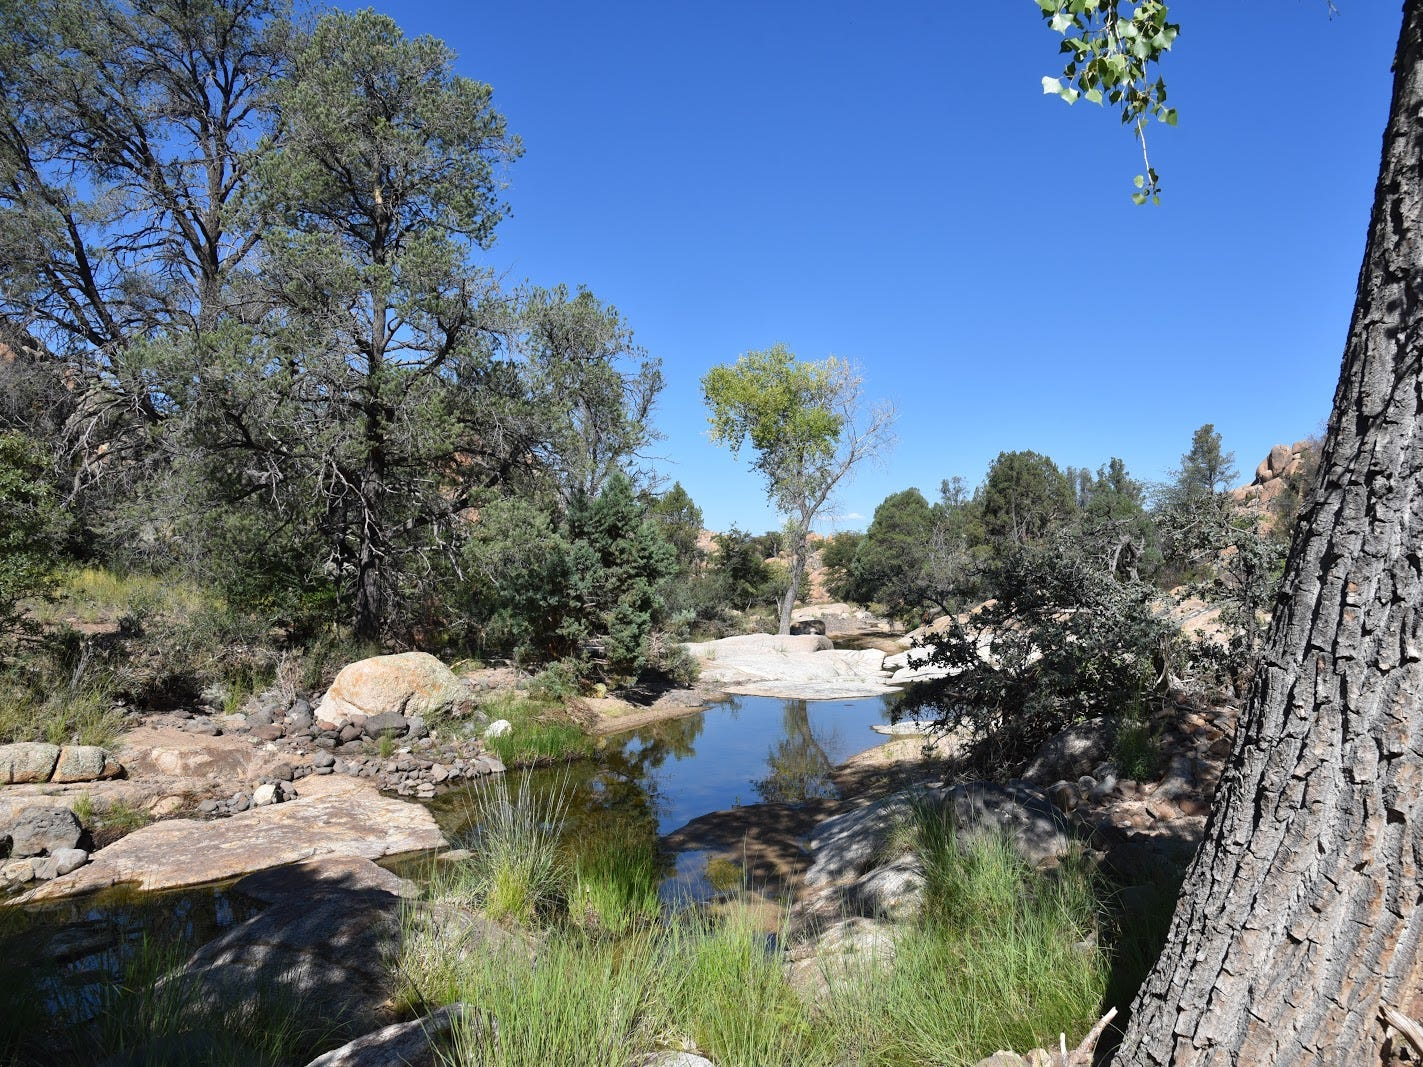 The Boulder Creek Trail in Prescott's Granite Dells adds a splash of green.